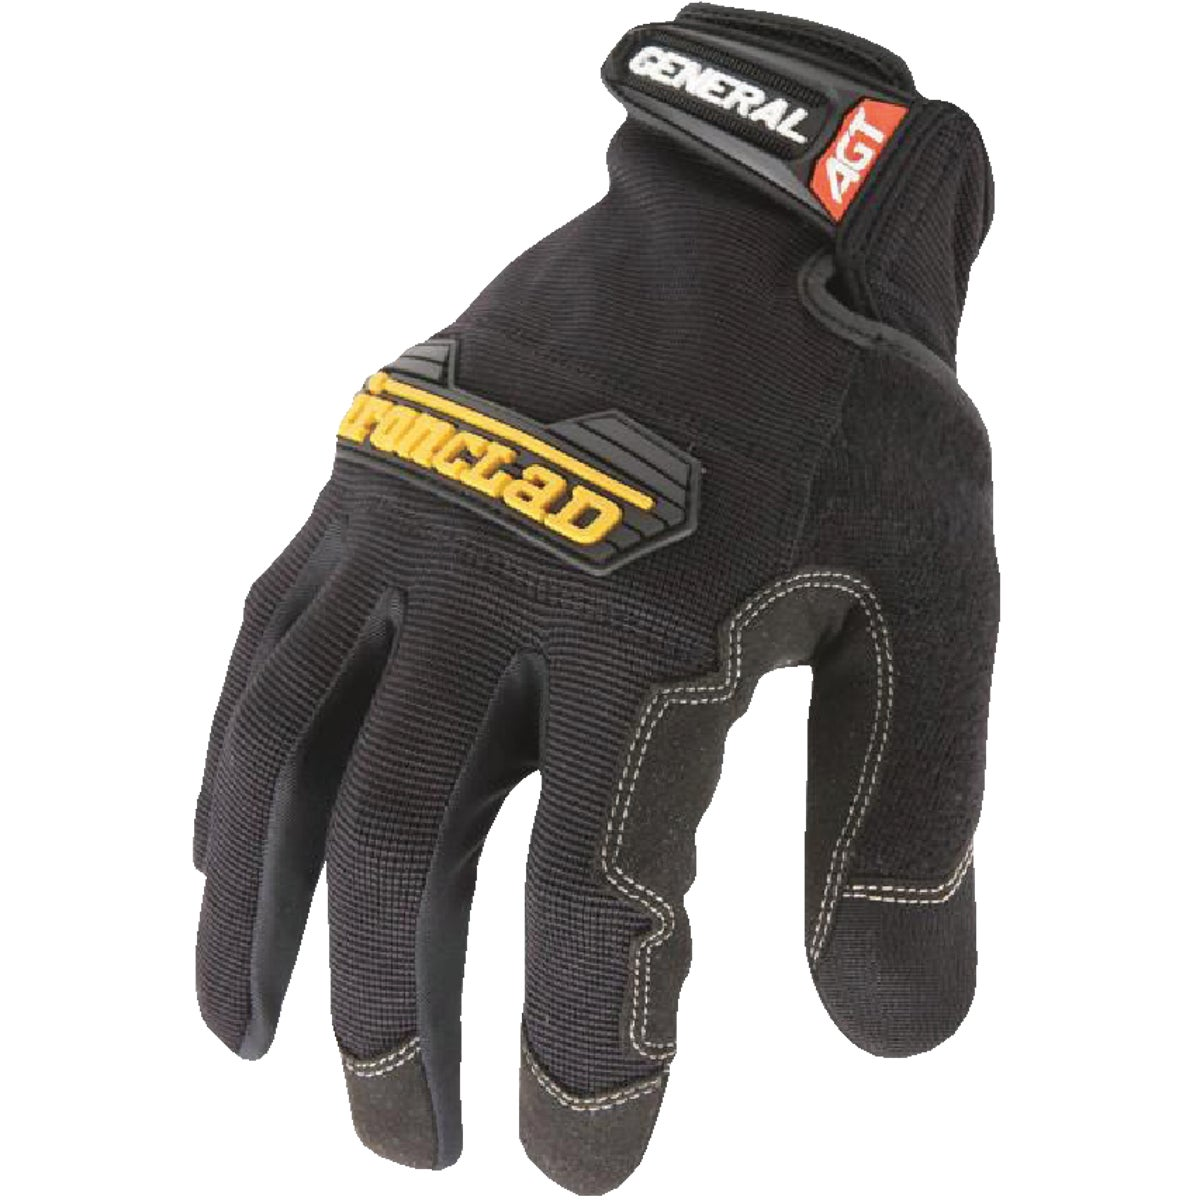 MED GEN UTILITY GLOVE - GUG2-03-M by Ironclad Performance